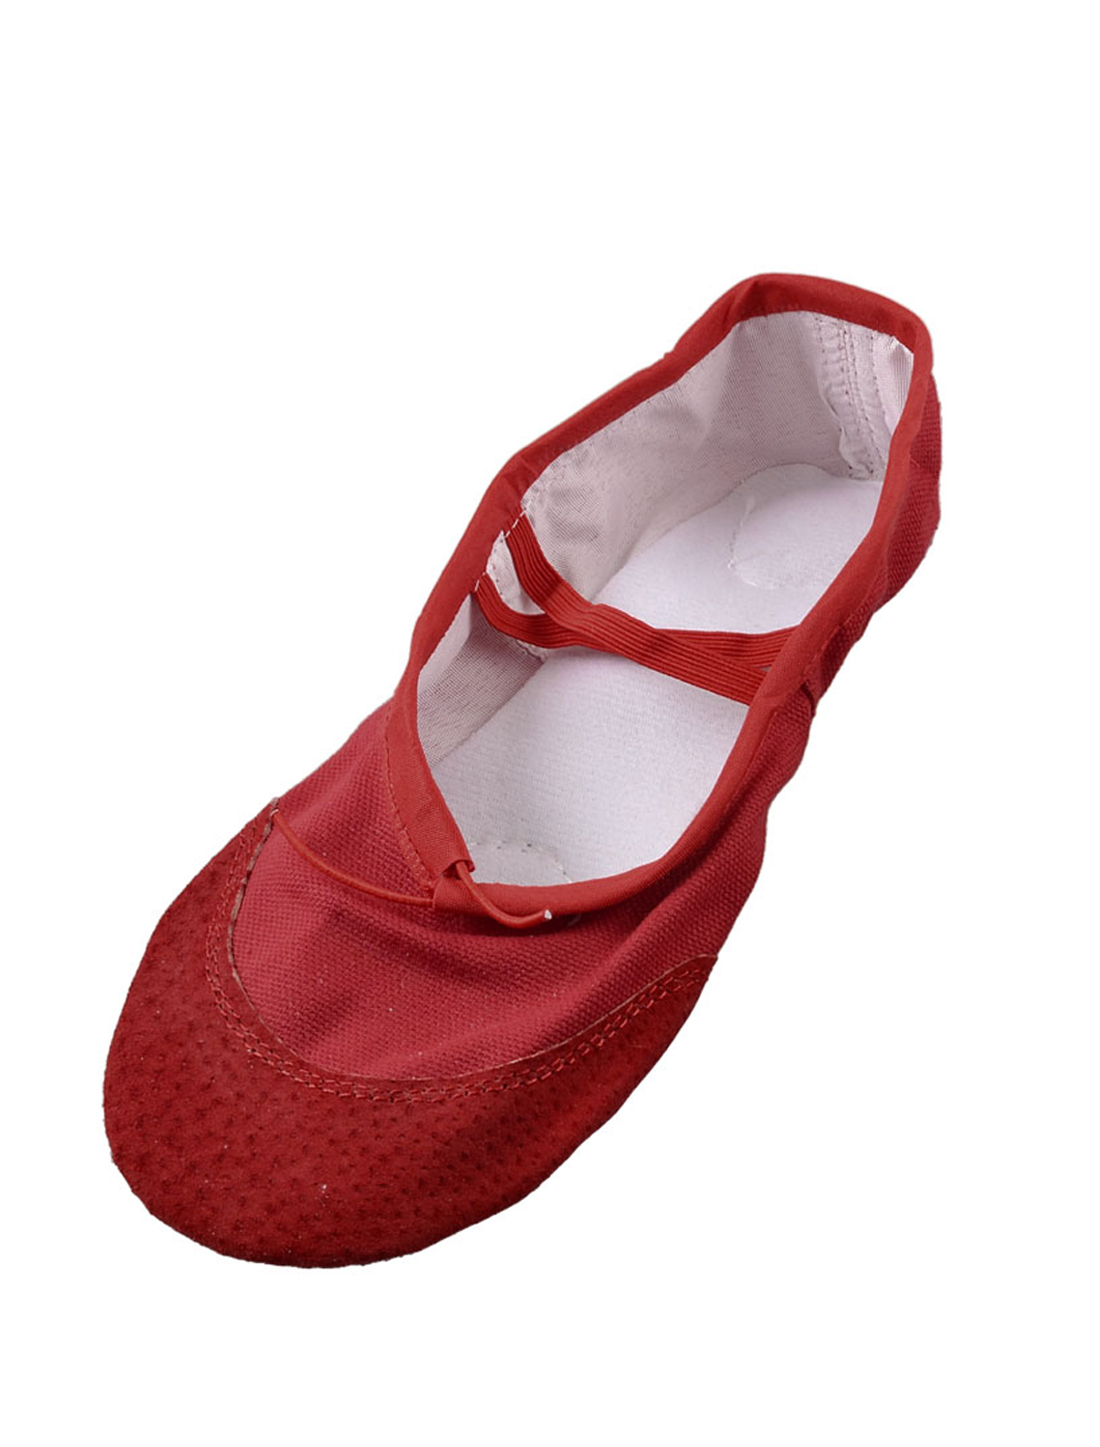 Women Red Soft Canvas Elastic Bands Flat Ballet Dancing Shoes US Size 6.5